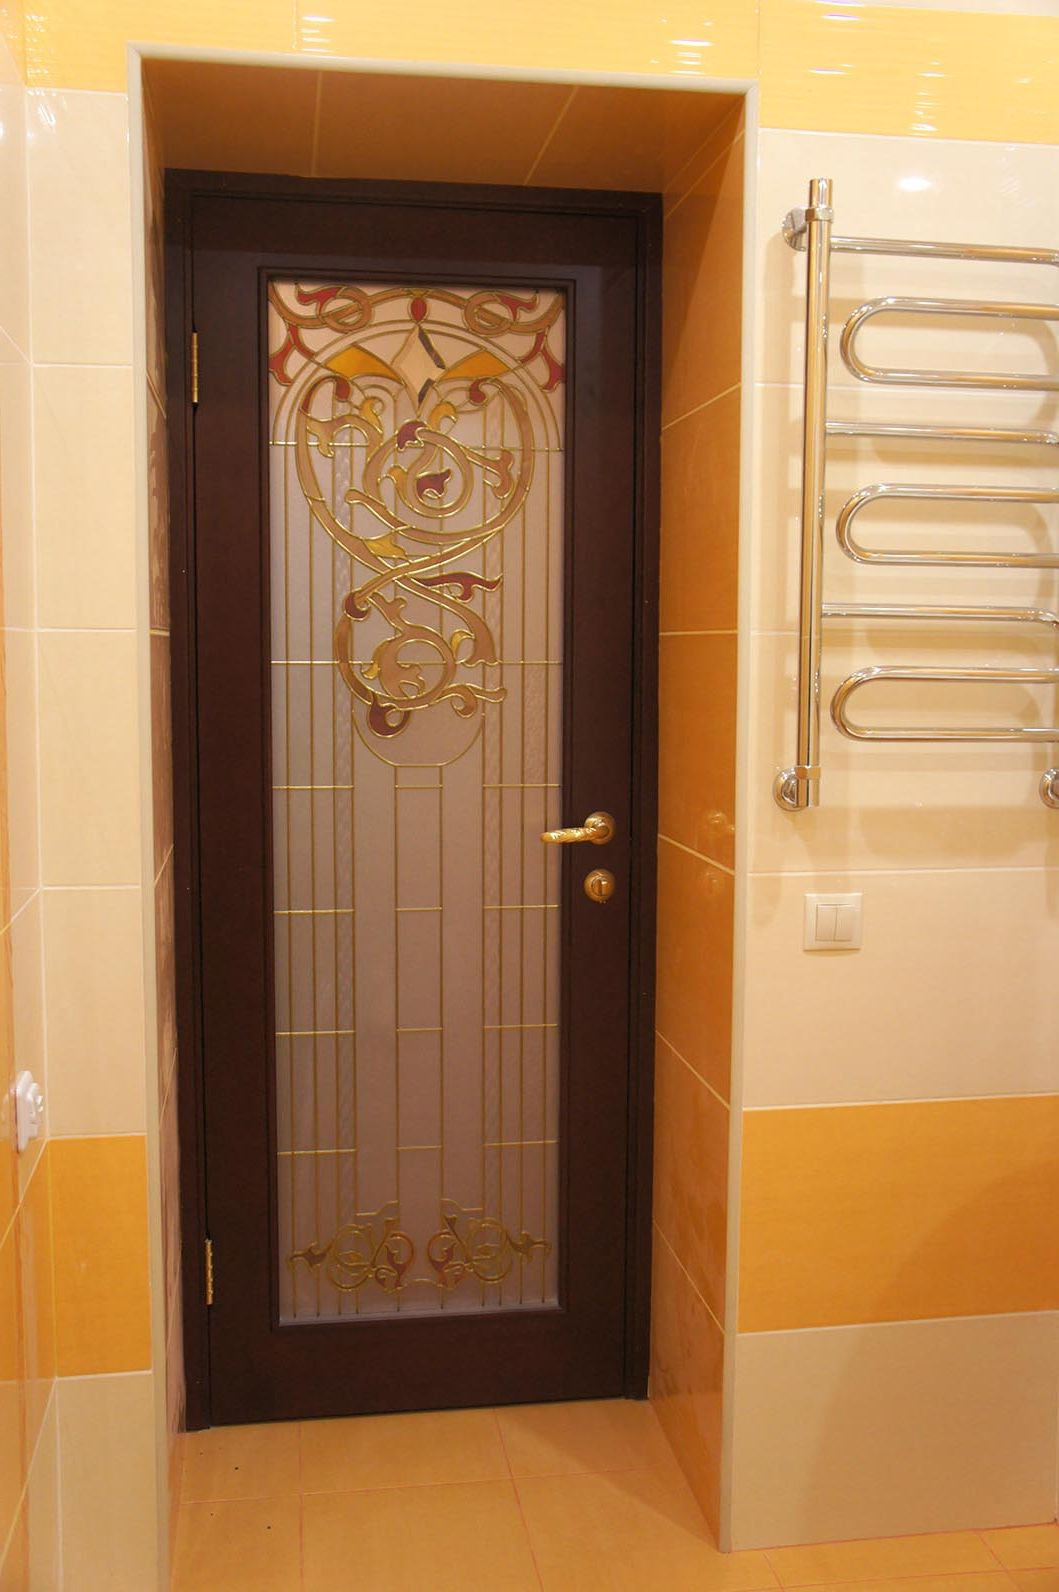 Plastic door with a large stained glass for bathroom